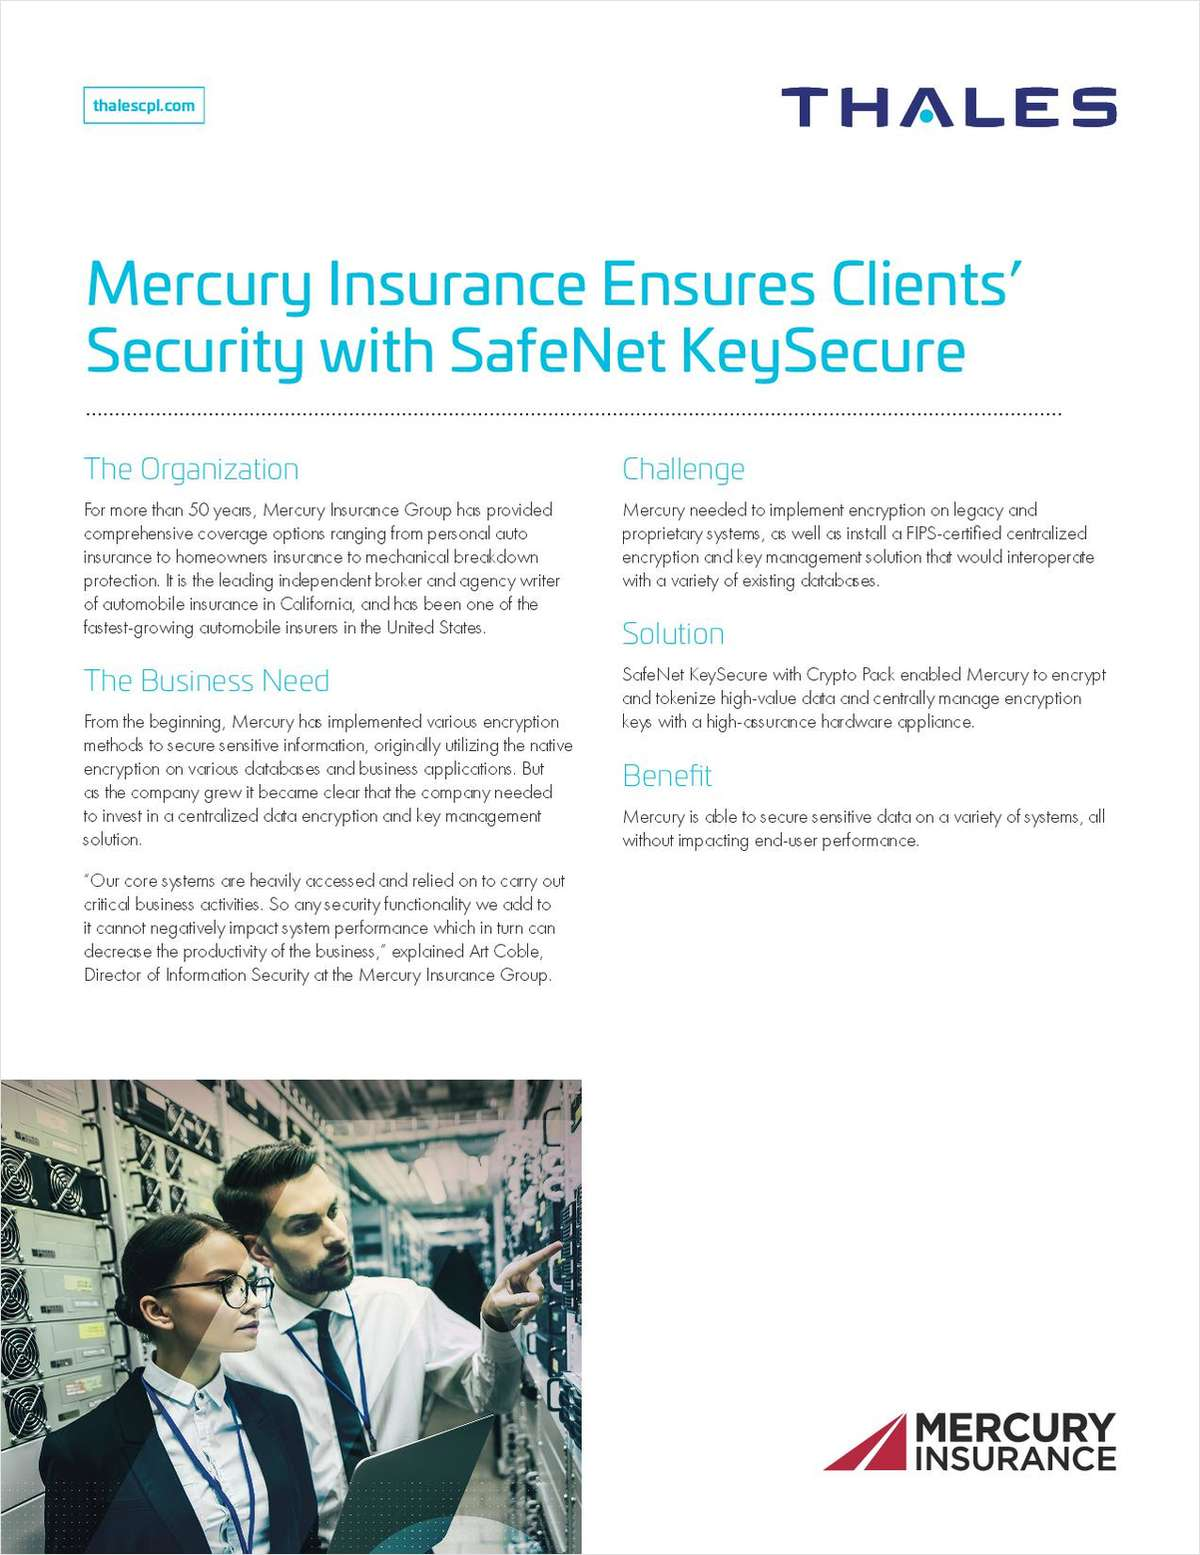 Mercury Insurance Ensures Clients' Security with SafeNet KeySecure